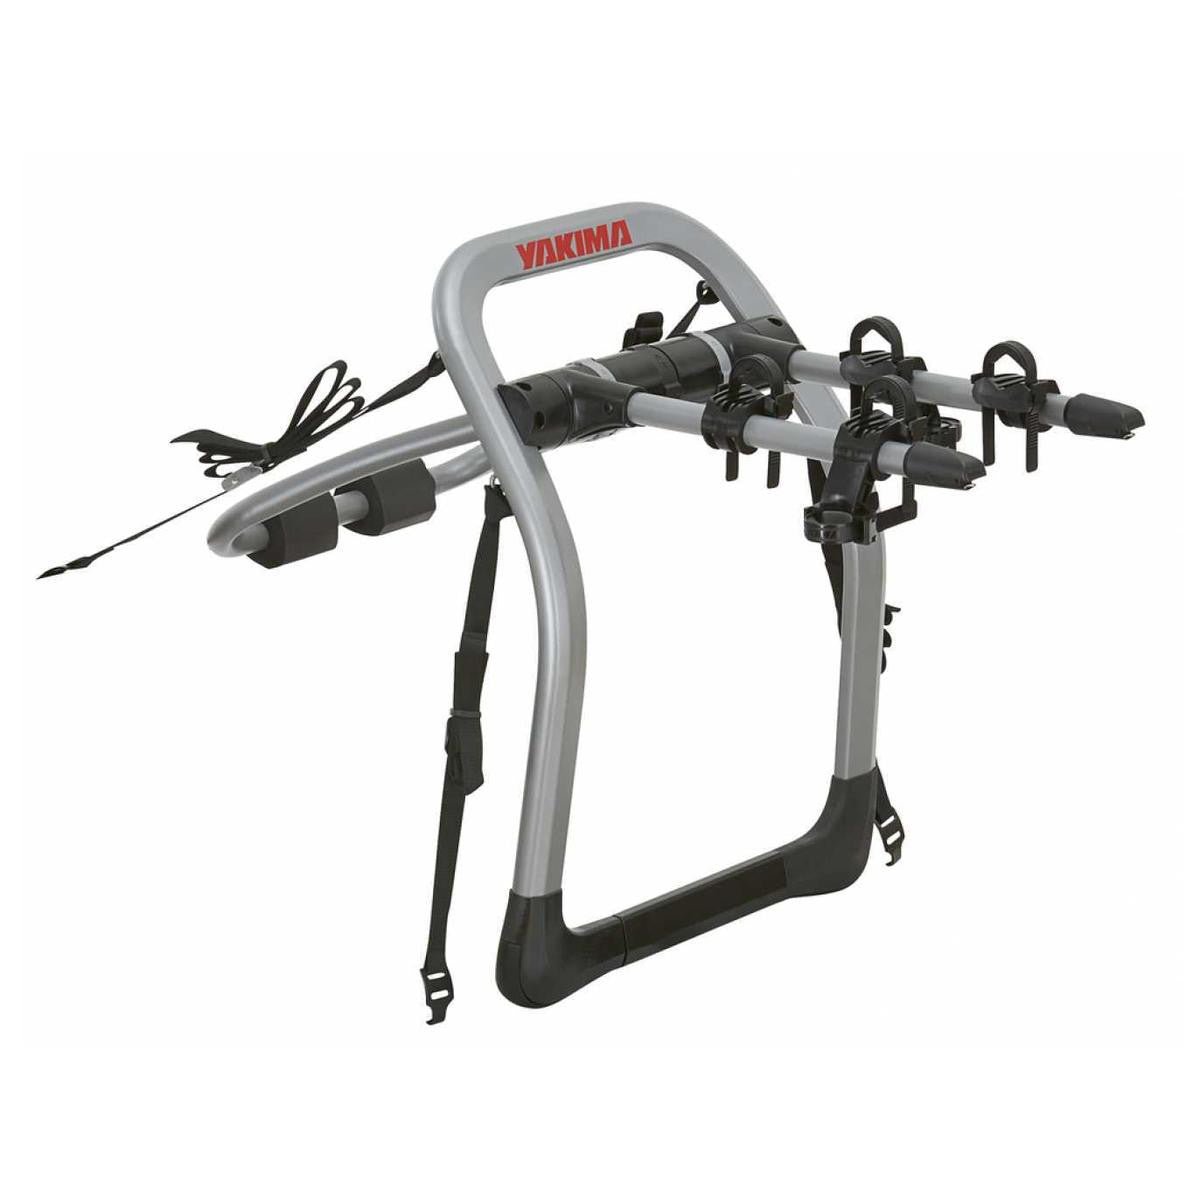 Yakima HalfBack Bike Rack